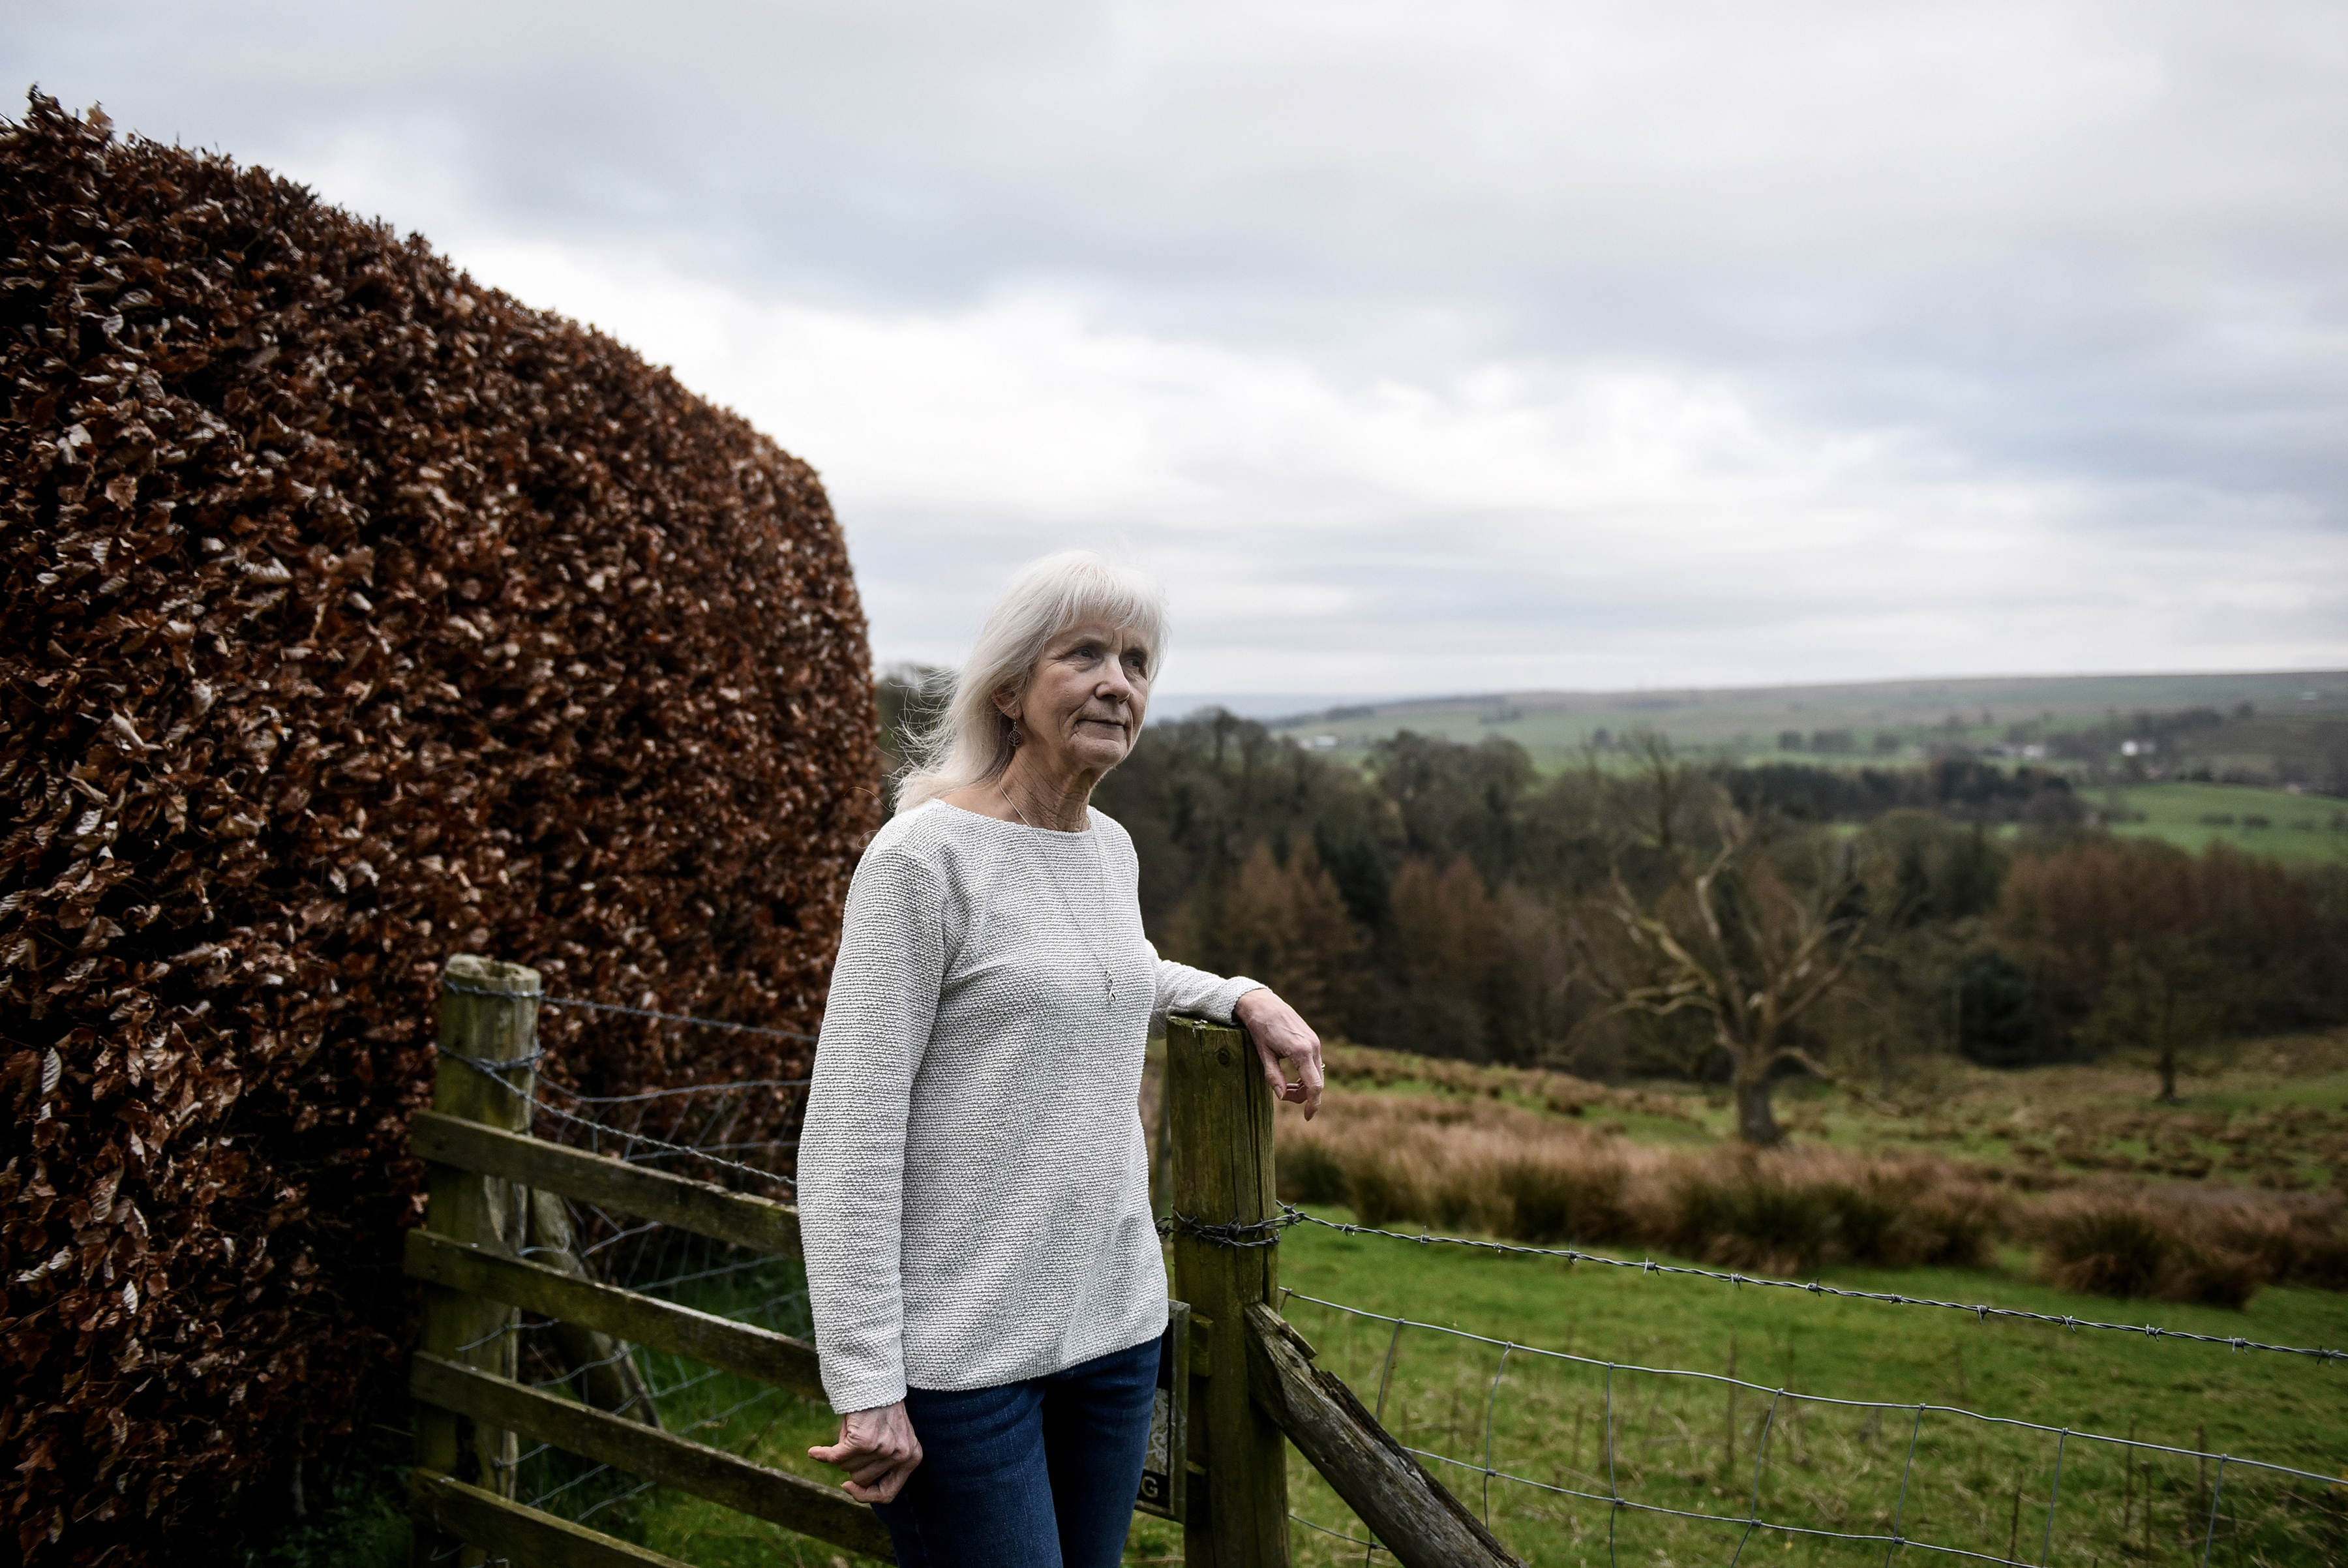 Jo Cameron, 71, who has a rare gene mutation that scientists believe inhibits her from feeling pain or anxiety, in Gilsland, England, in March 27 2019.